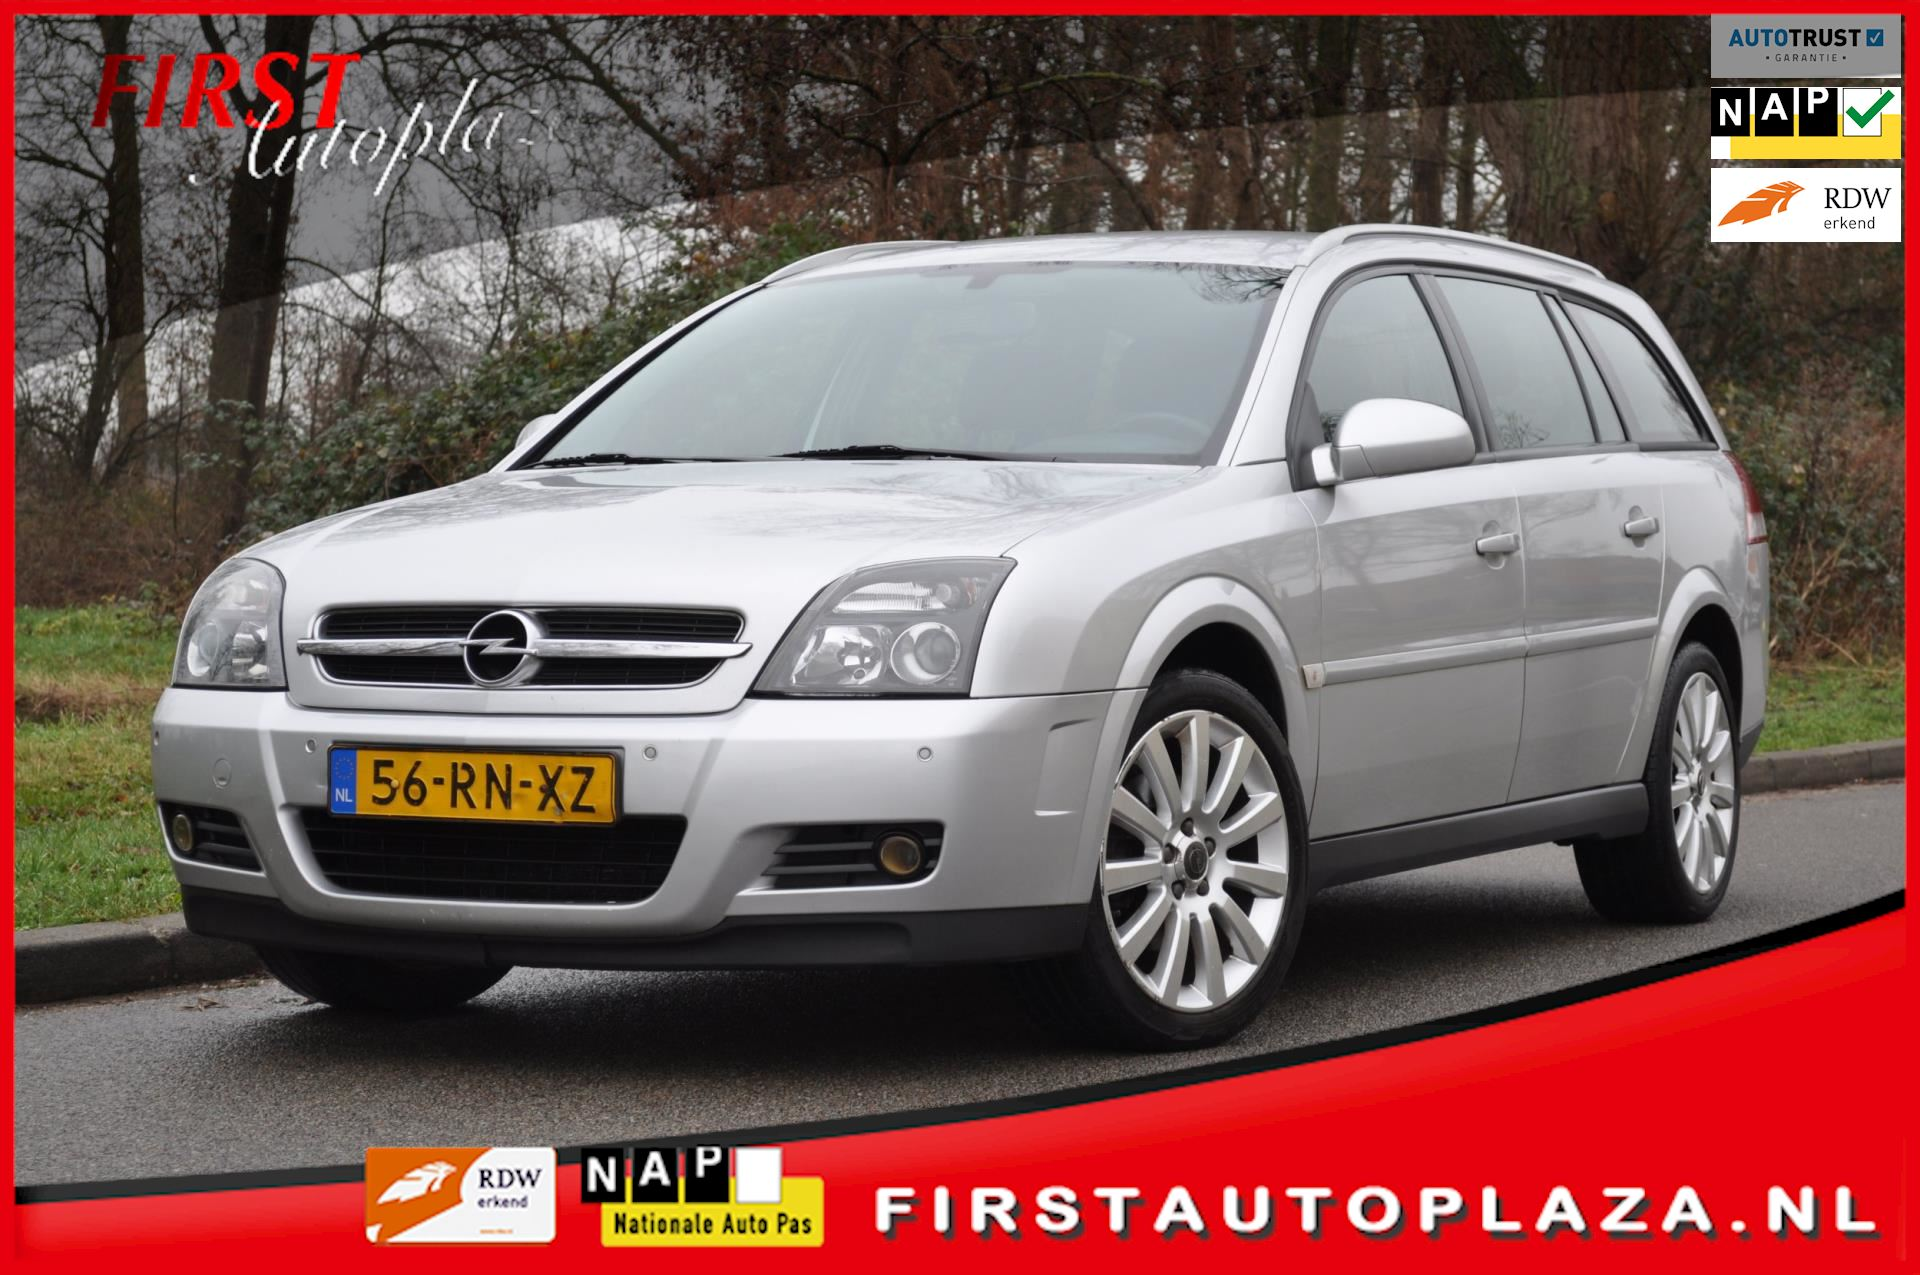 Opel Vectra Wagon occasion - FIRST Autoplaza B.V.